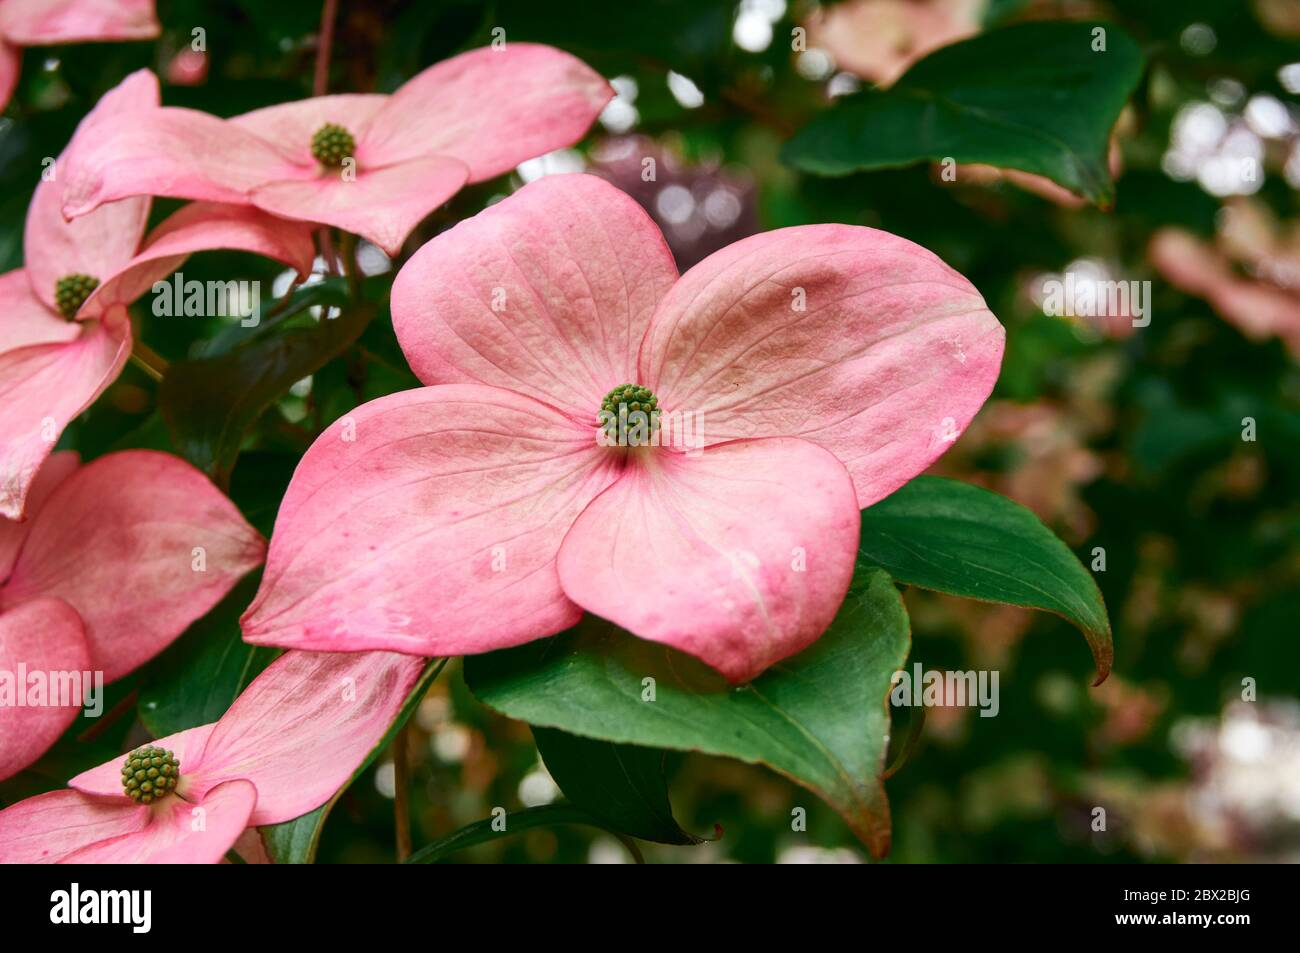 closeup-of-red-dogwood-flowers-blooming-